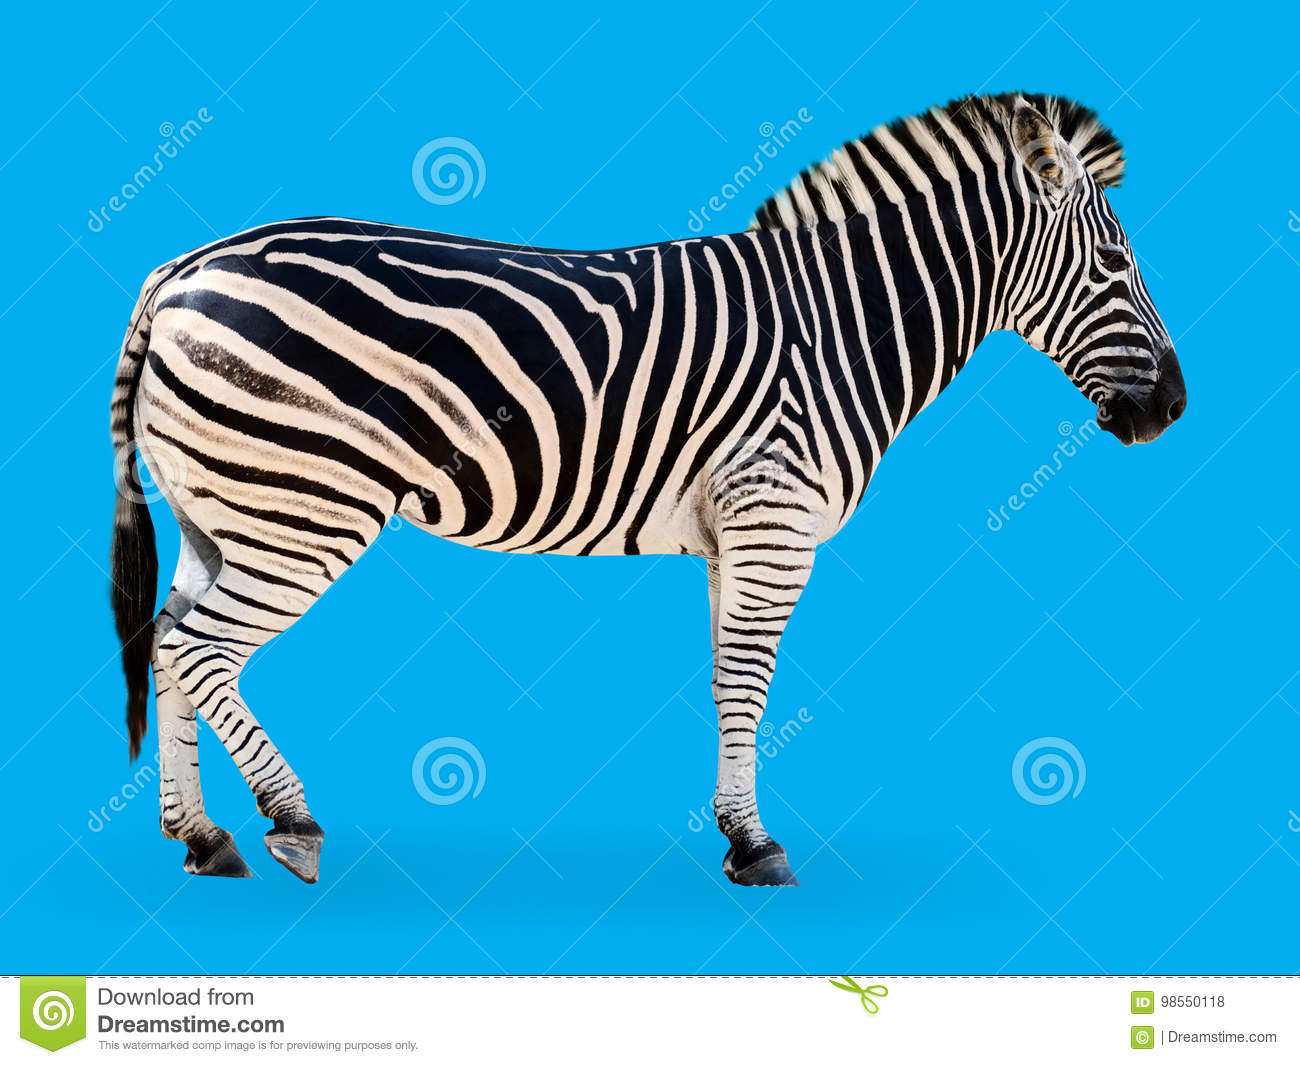 Download 760 Background Zebra Blue Paling Keren